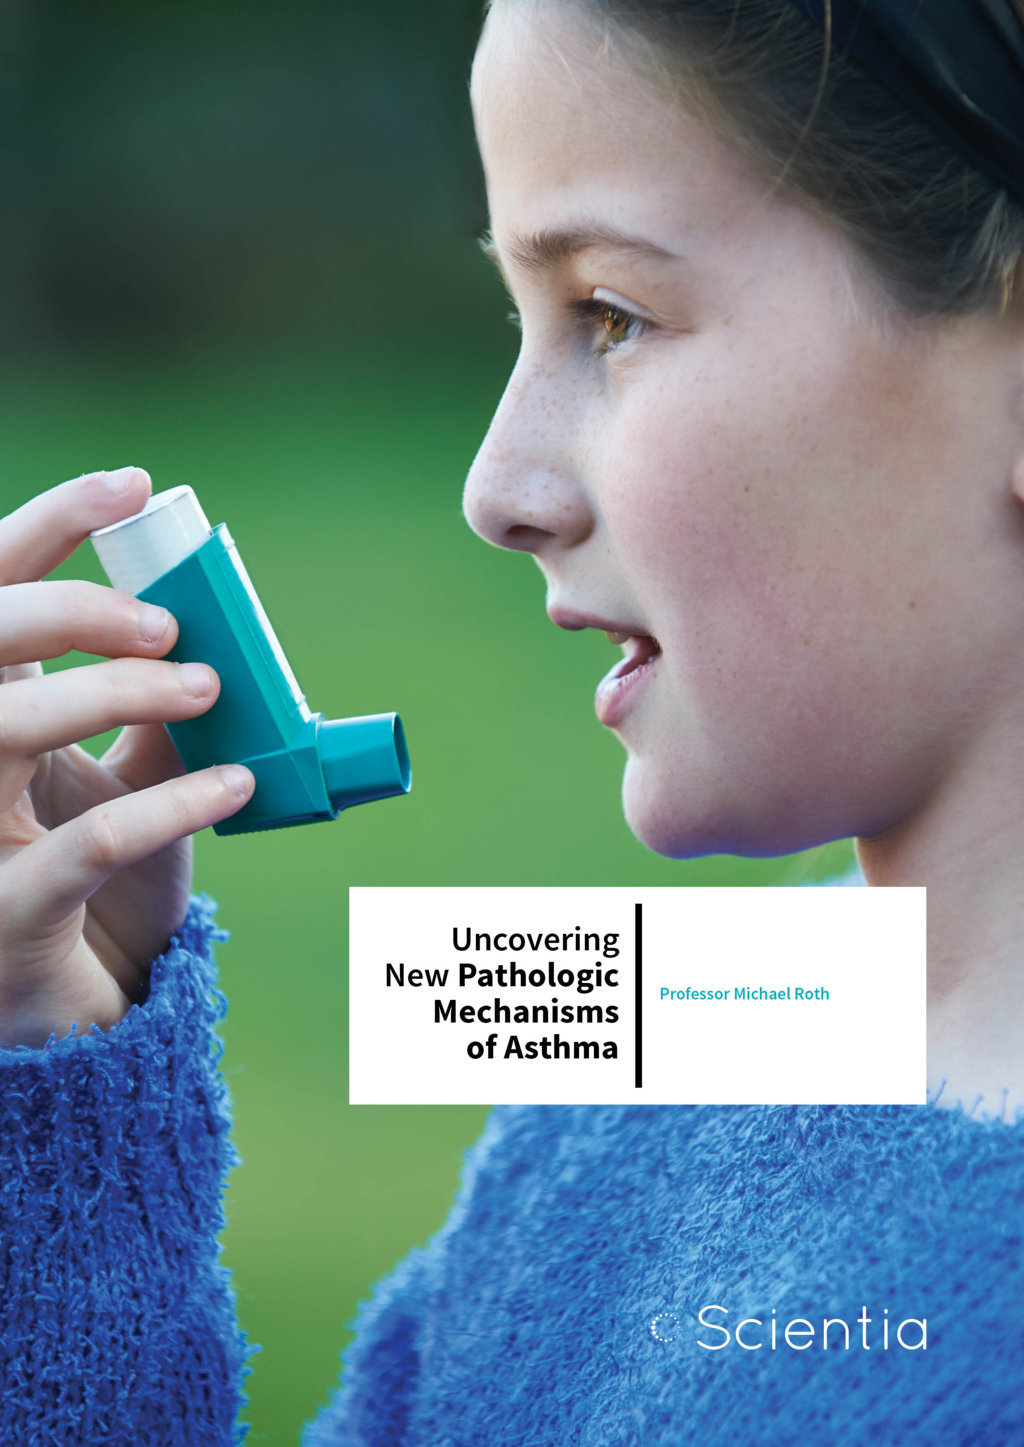 Professor Michael Roth – Uncovering New Pathologic Mechanisms Of Asthma